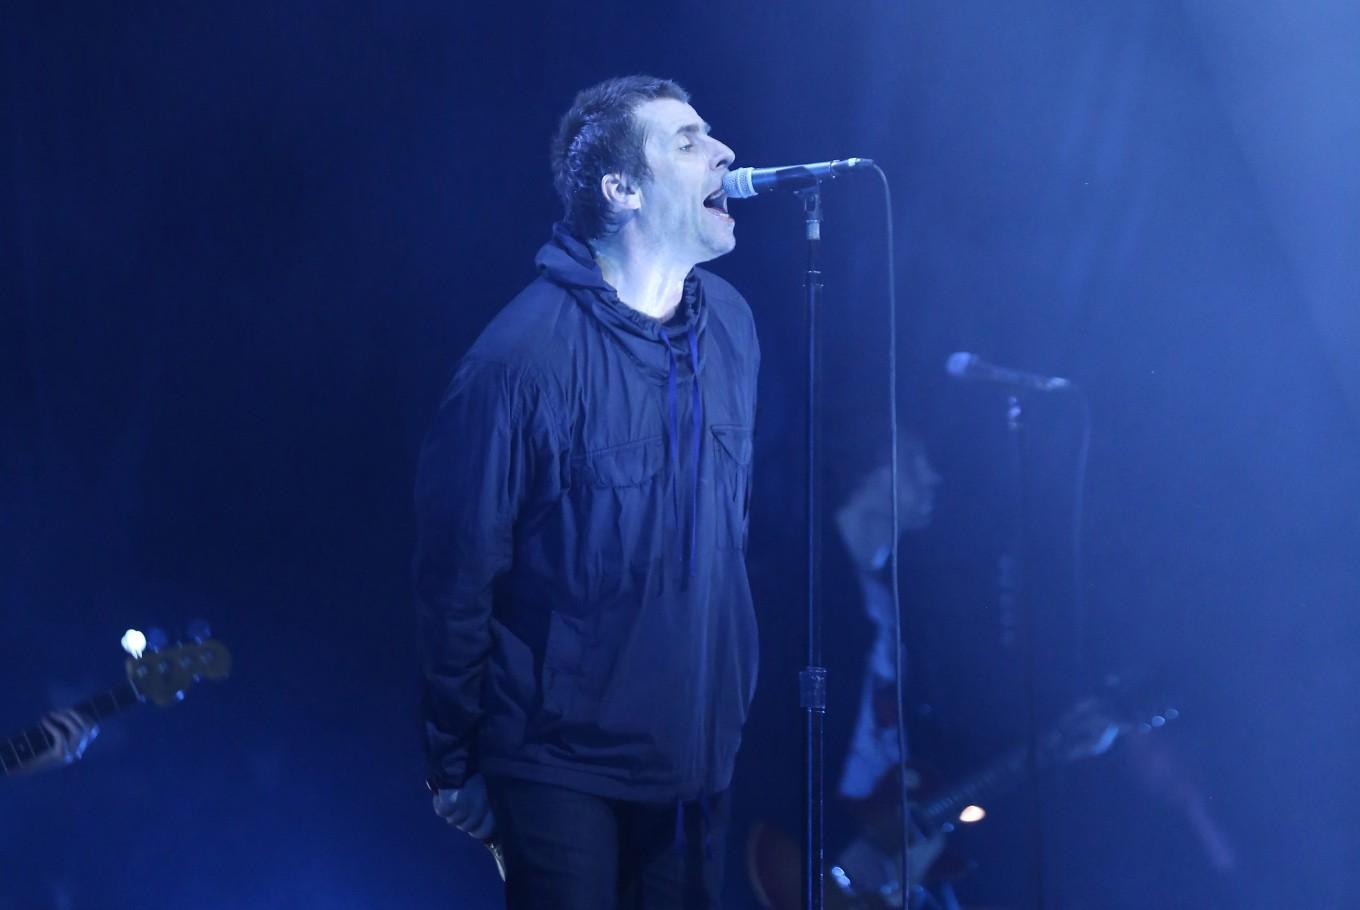 Liam Gallagher's tweets fuel speculation over Oasis reunion